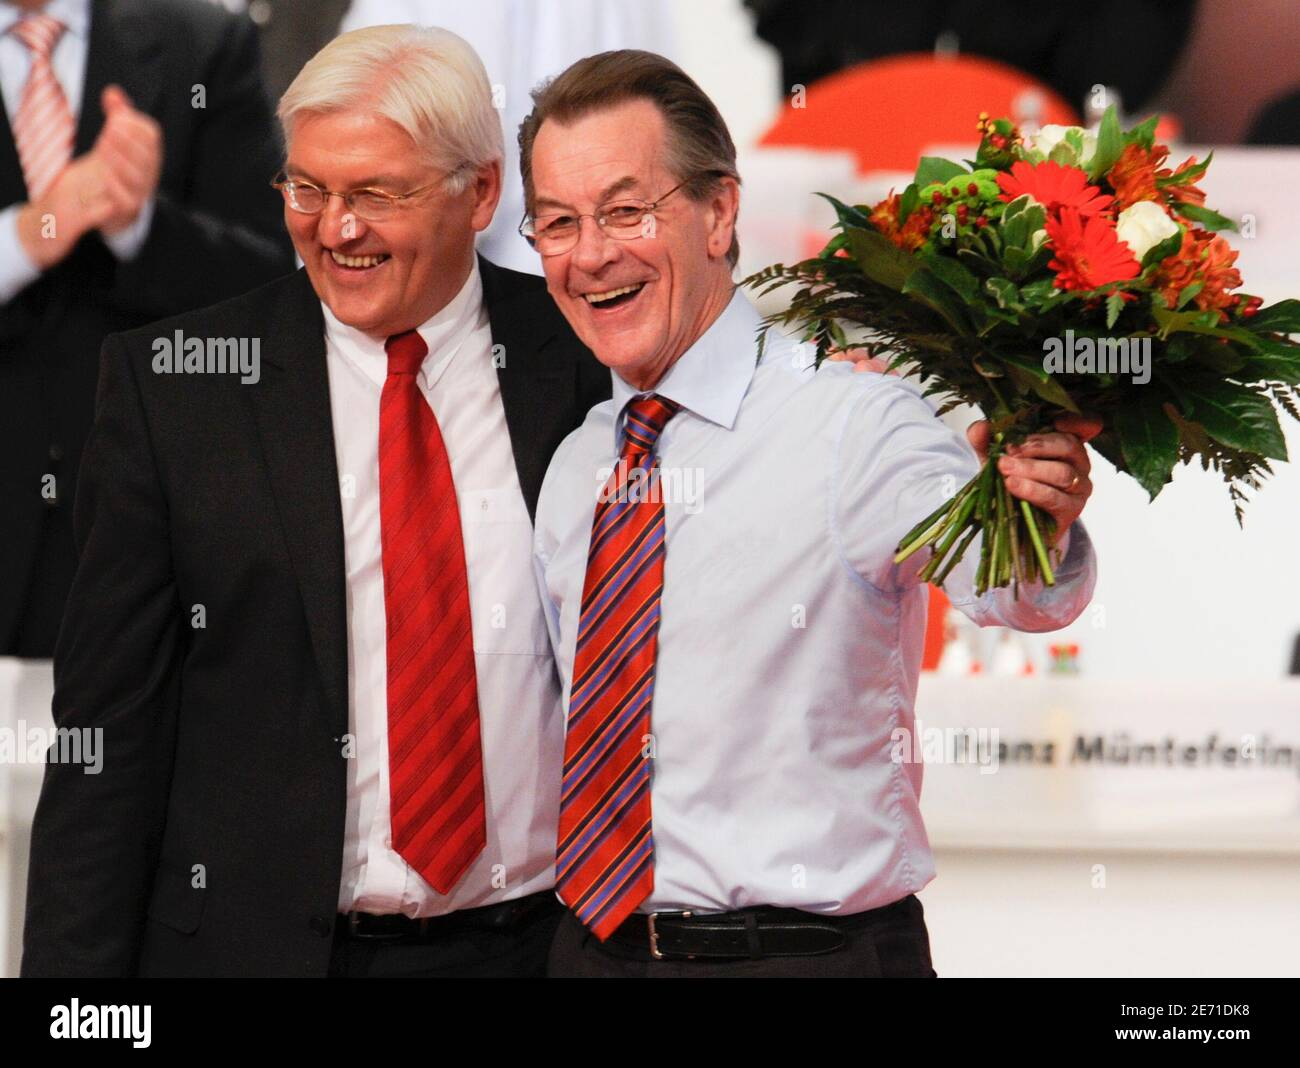 Franz Muentefering (R) waves flowers after he was elected as leader of Germany's Social Democratic party SPD at a one-day party congress in Berlin October 18, 2008, while he stands with Foreign Minister Frank-Walter Steinmeier. Germany's Social Democrats crowned Steinmeier as their candidate for chancellor and elected Muentefering as their leader on Saturday.   REUTERS/Wolfgang Rattay    (GERMANY) Stock Photo